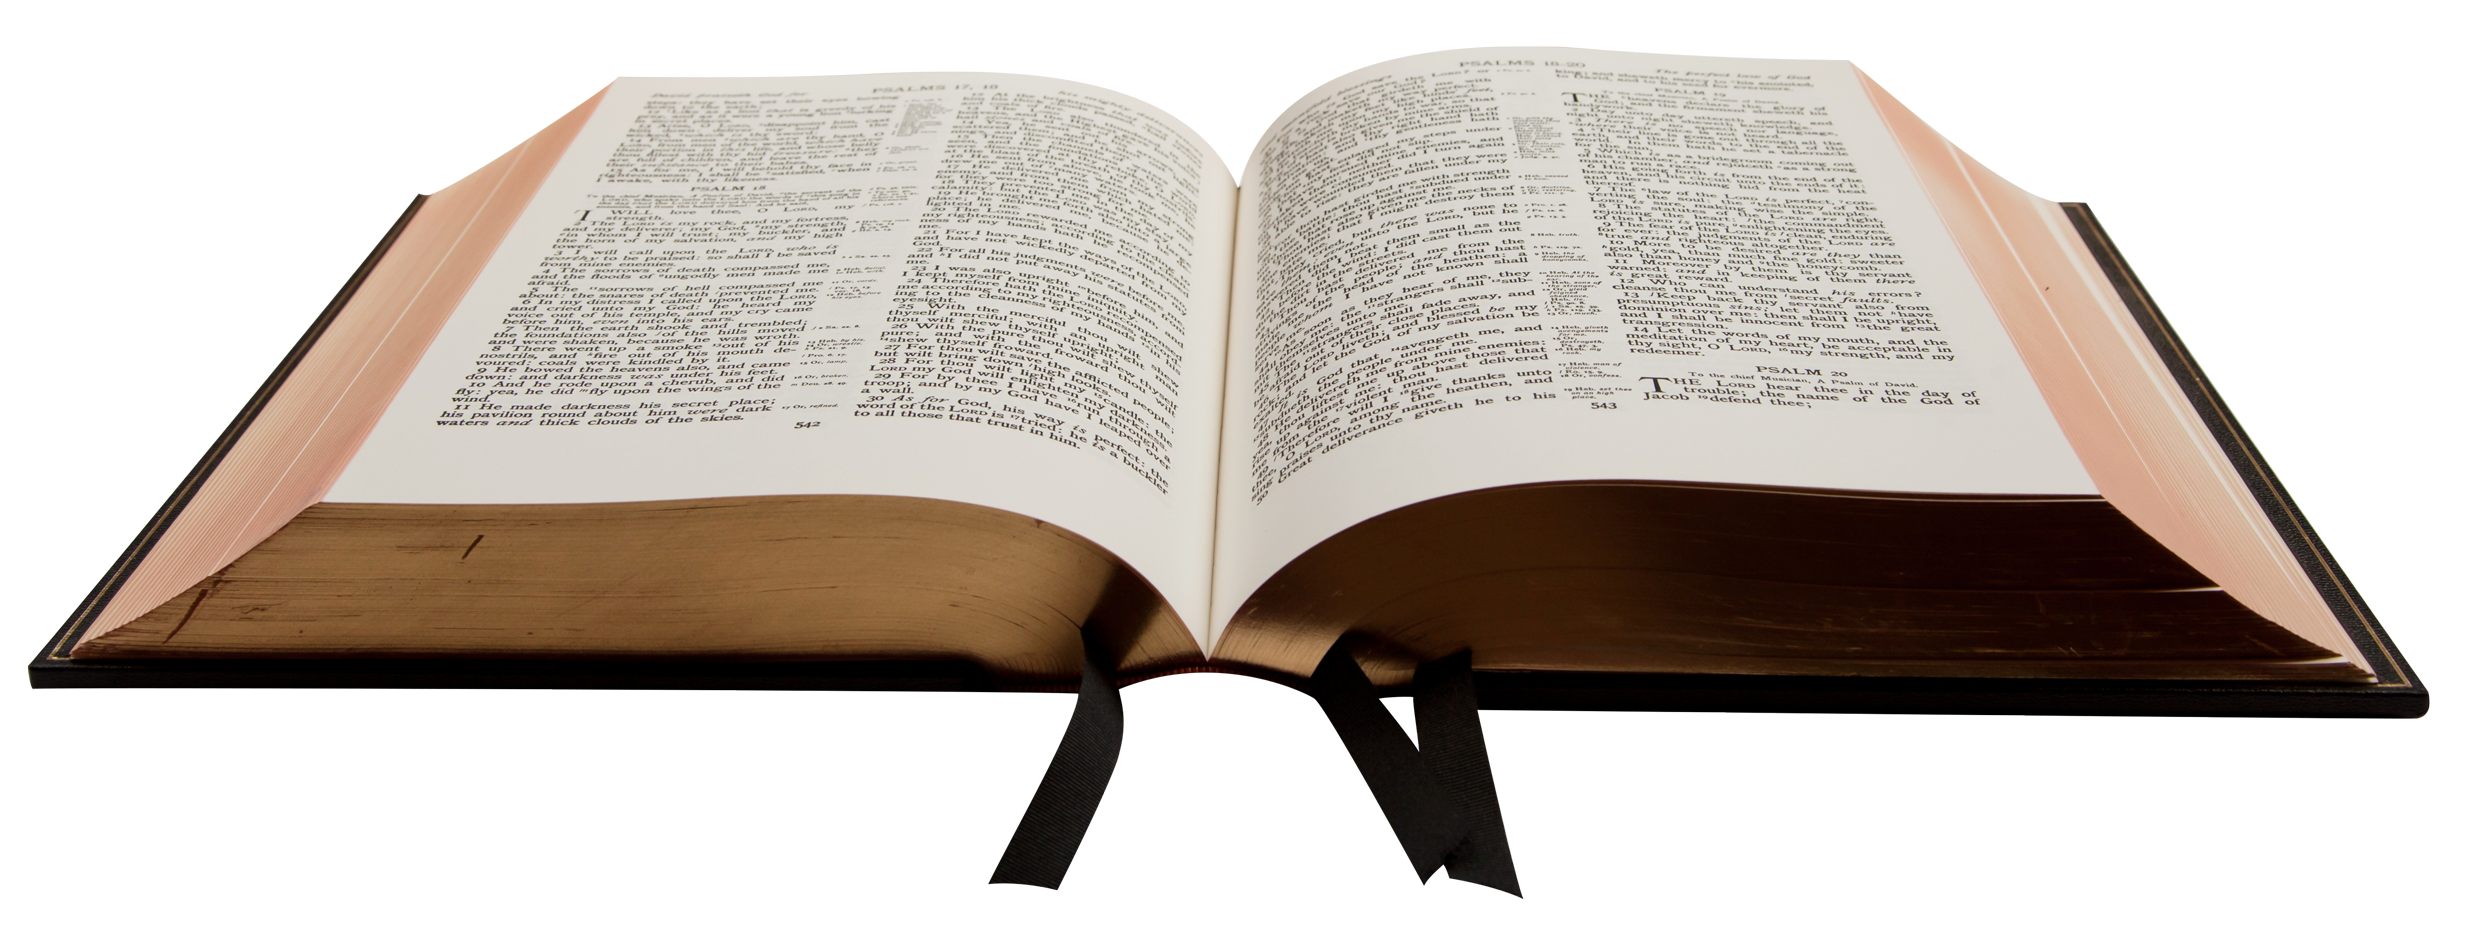 Png book. Bible transparent image best